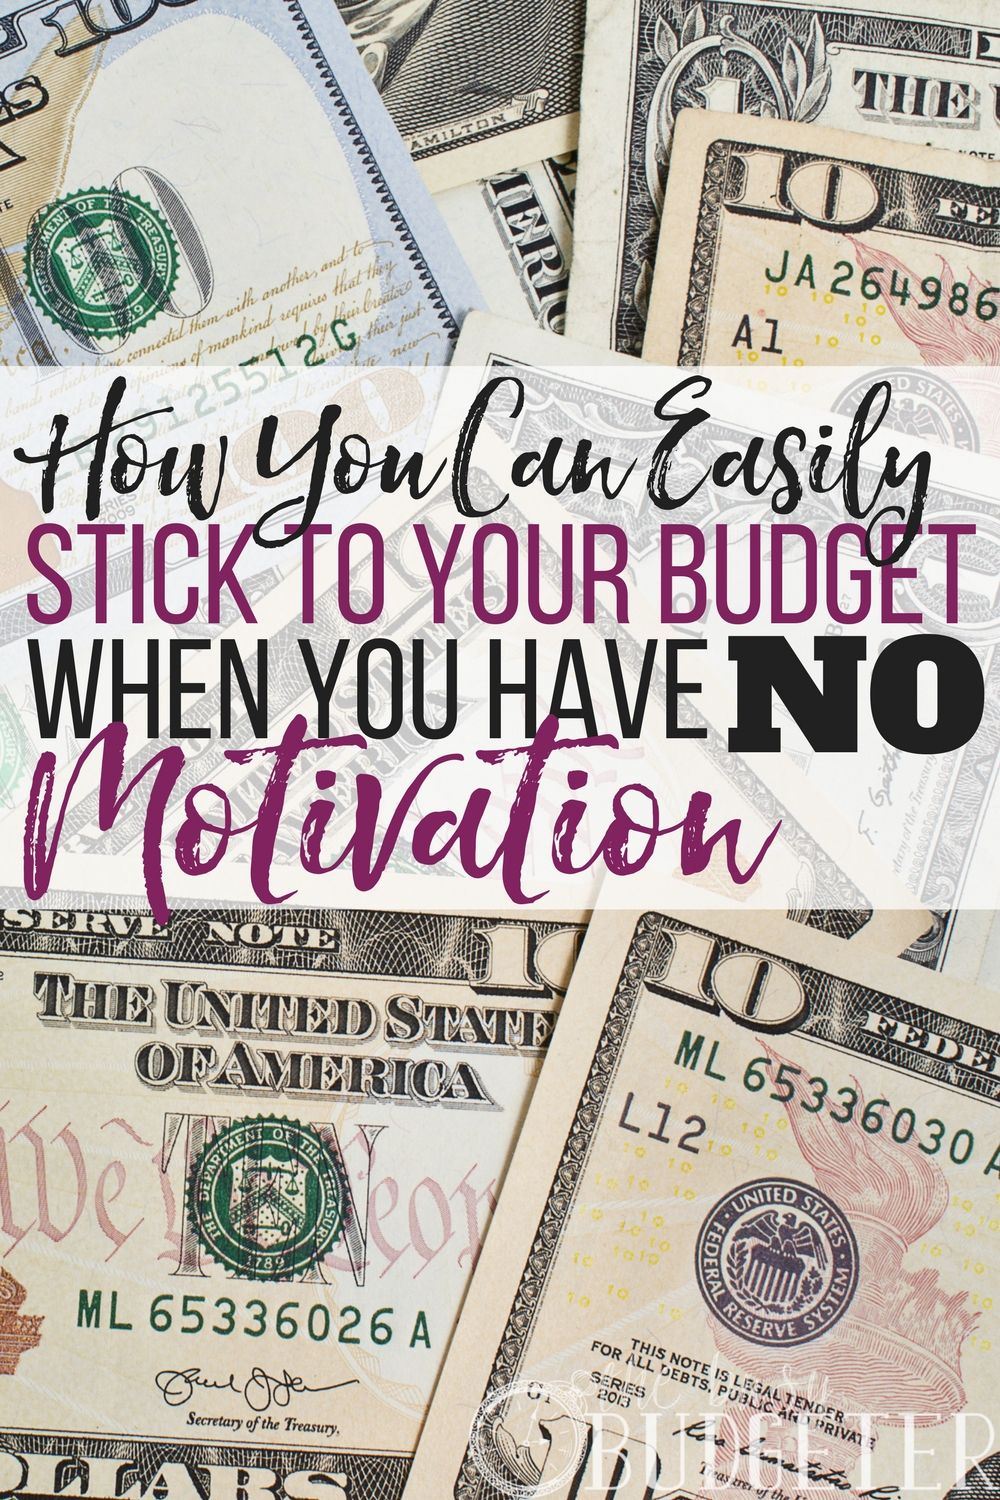 6 Make A Budget To Stick To